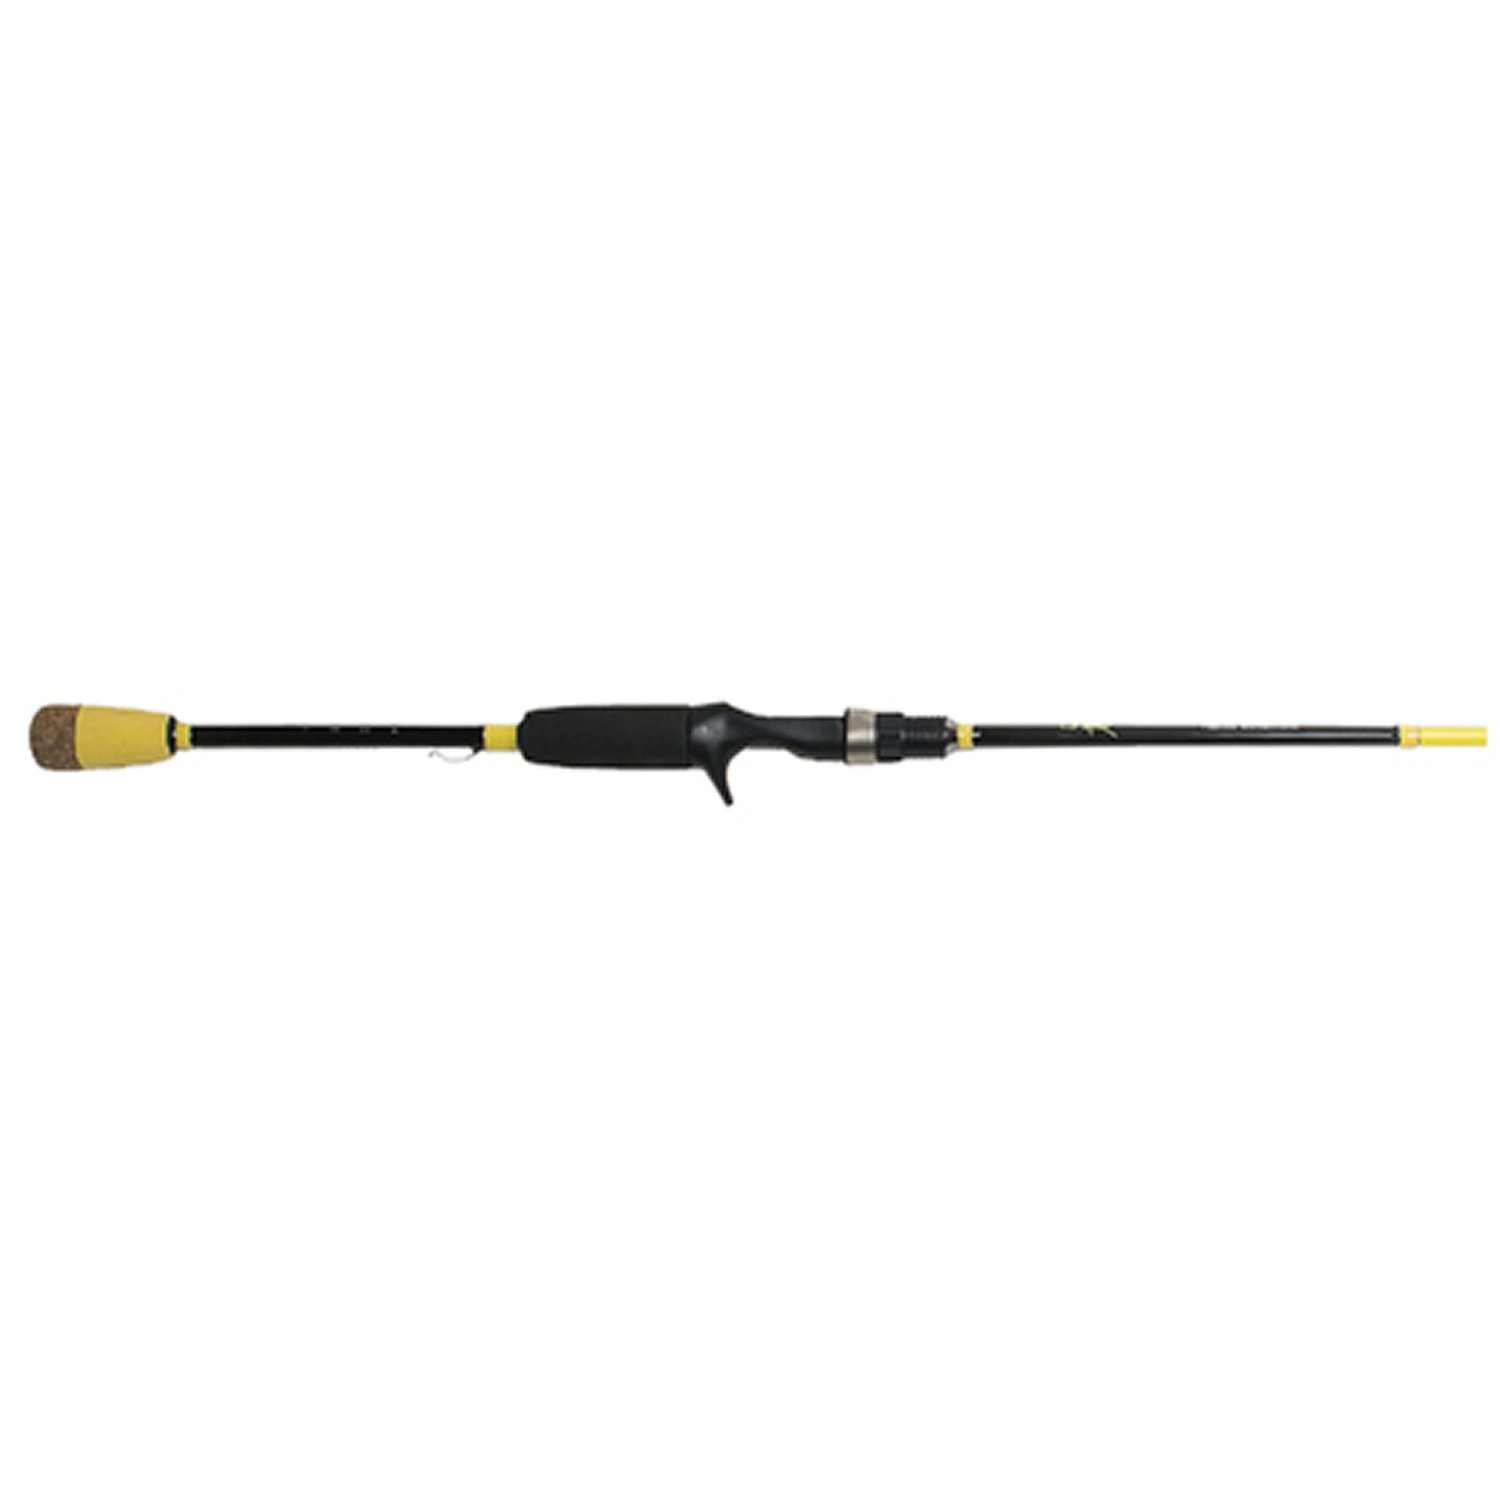 Wright McGill Skeet Reese Micro Honeycomb Spinner Bait Worm Rod Yellow, 7-Feet